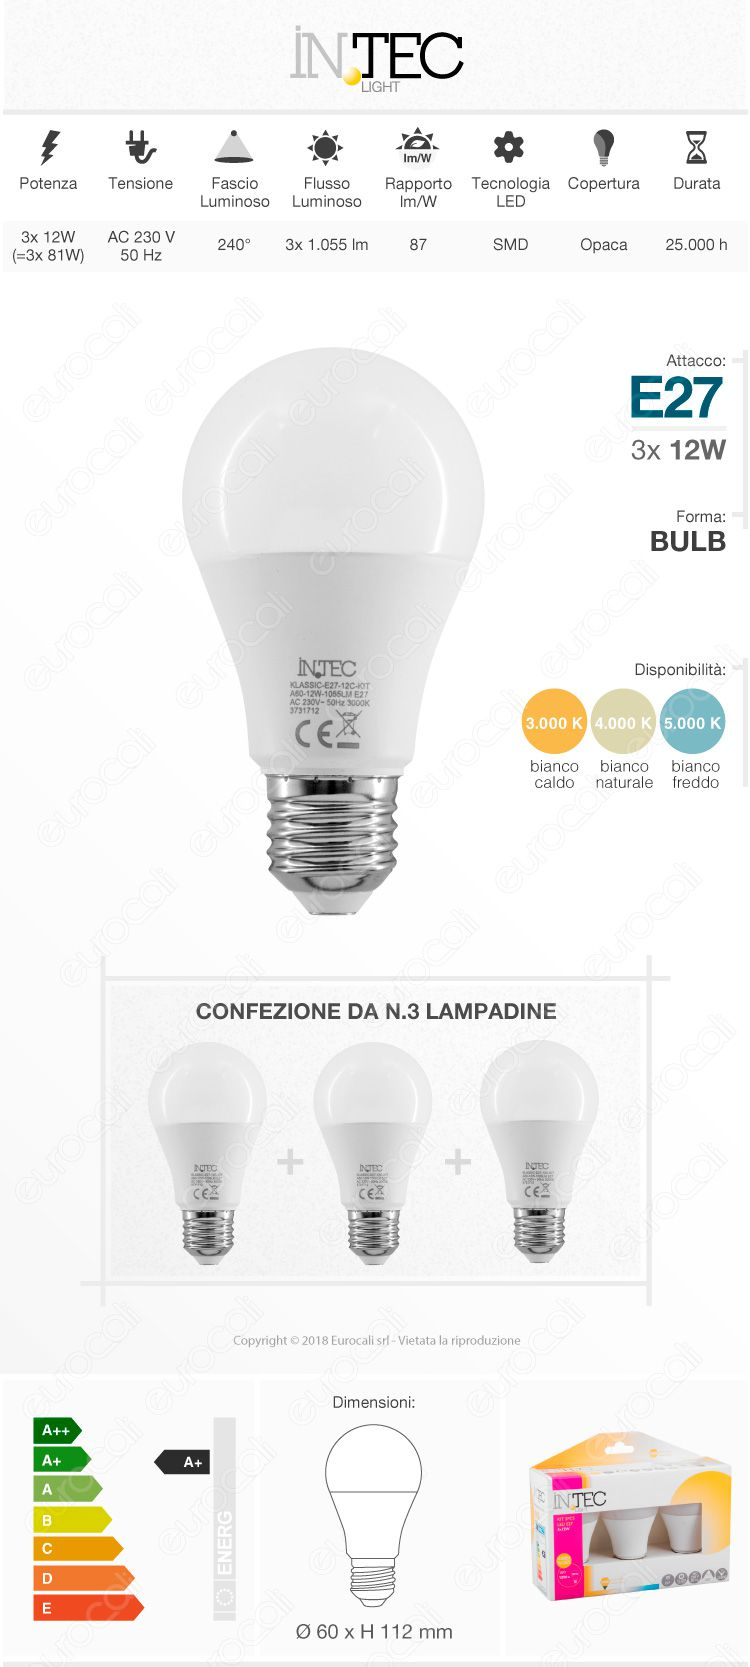 3 Lampadine LED E27 12W Bulb A60 Fan Europe Intec Light Confezione Risparmio